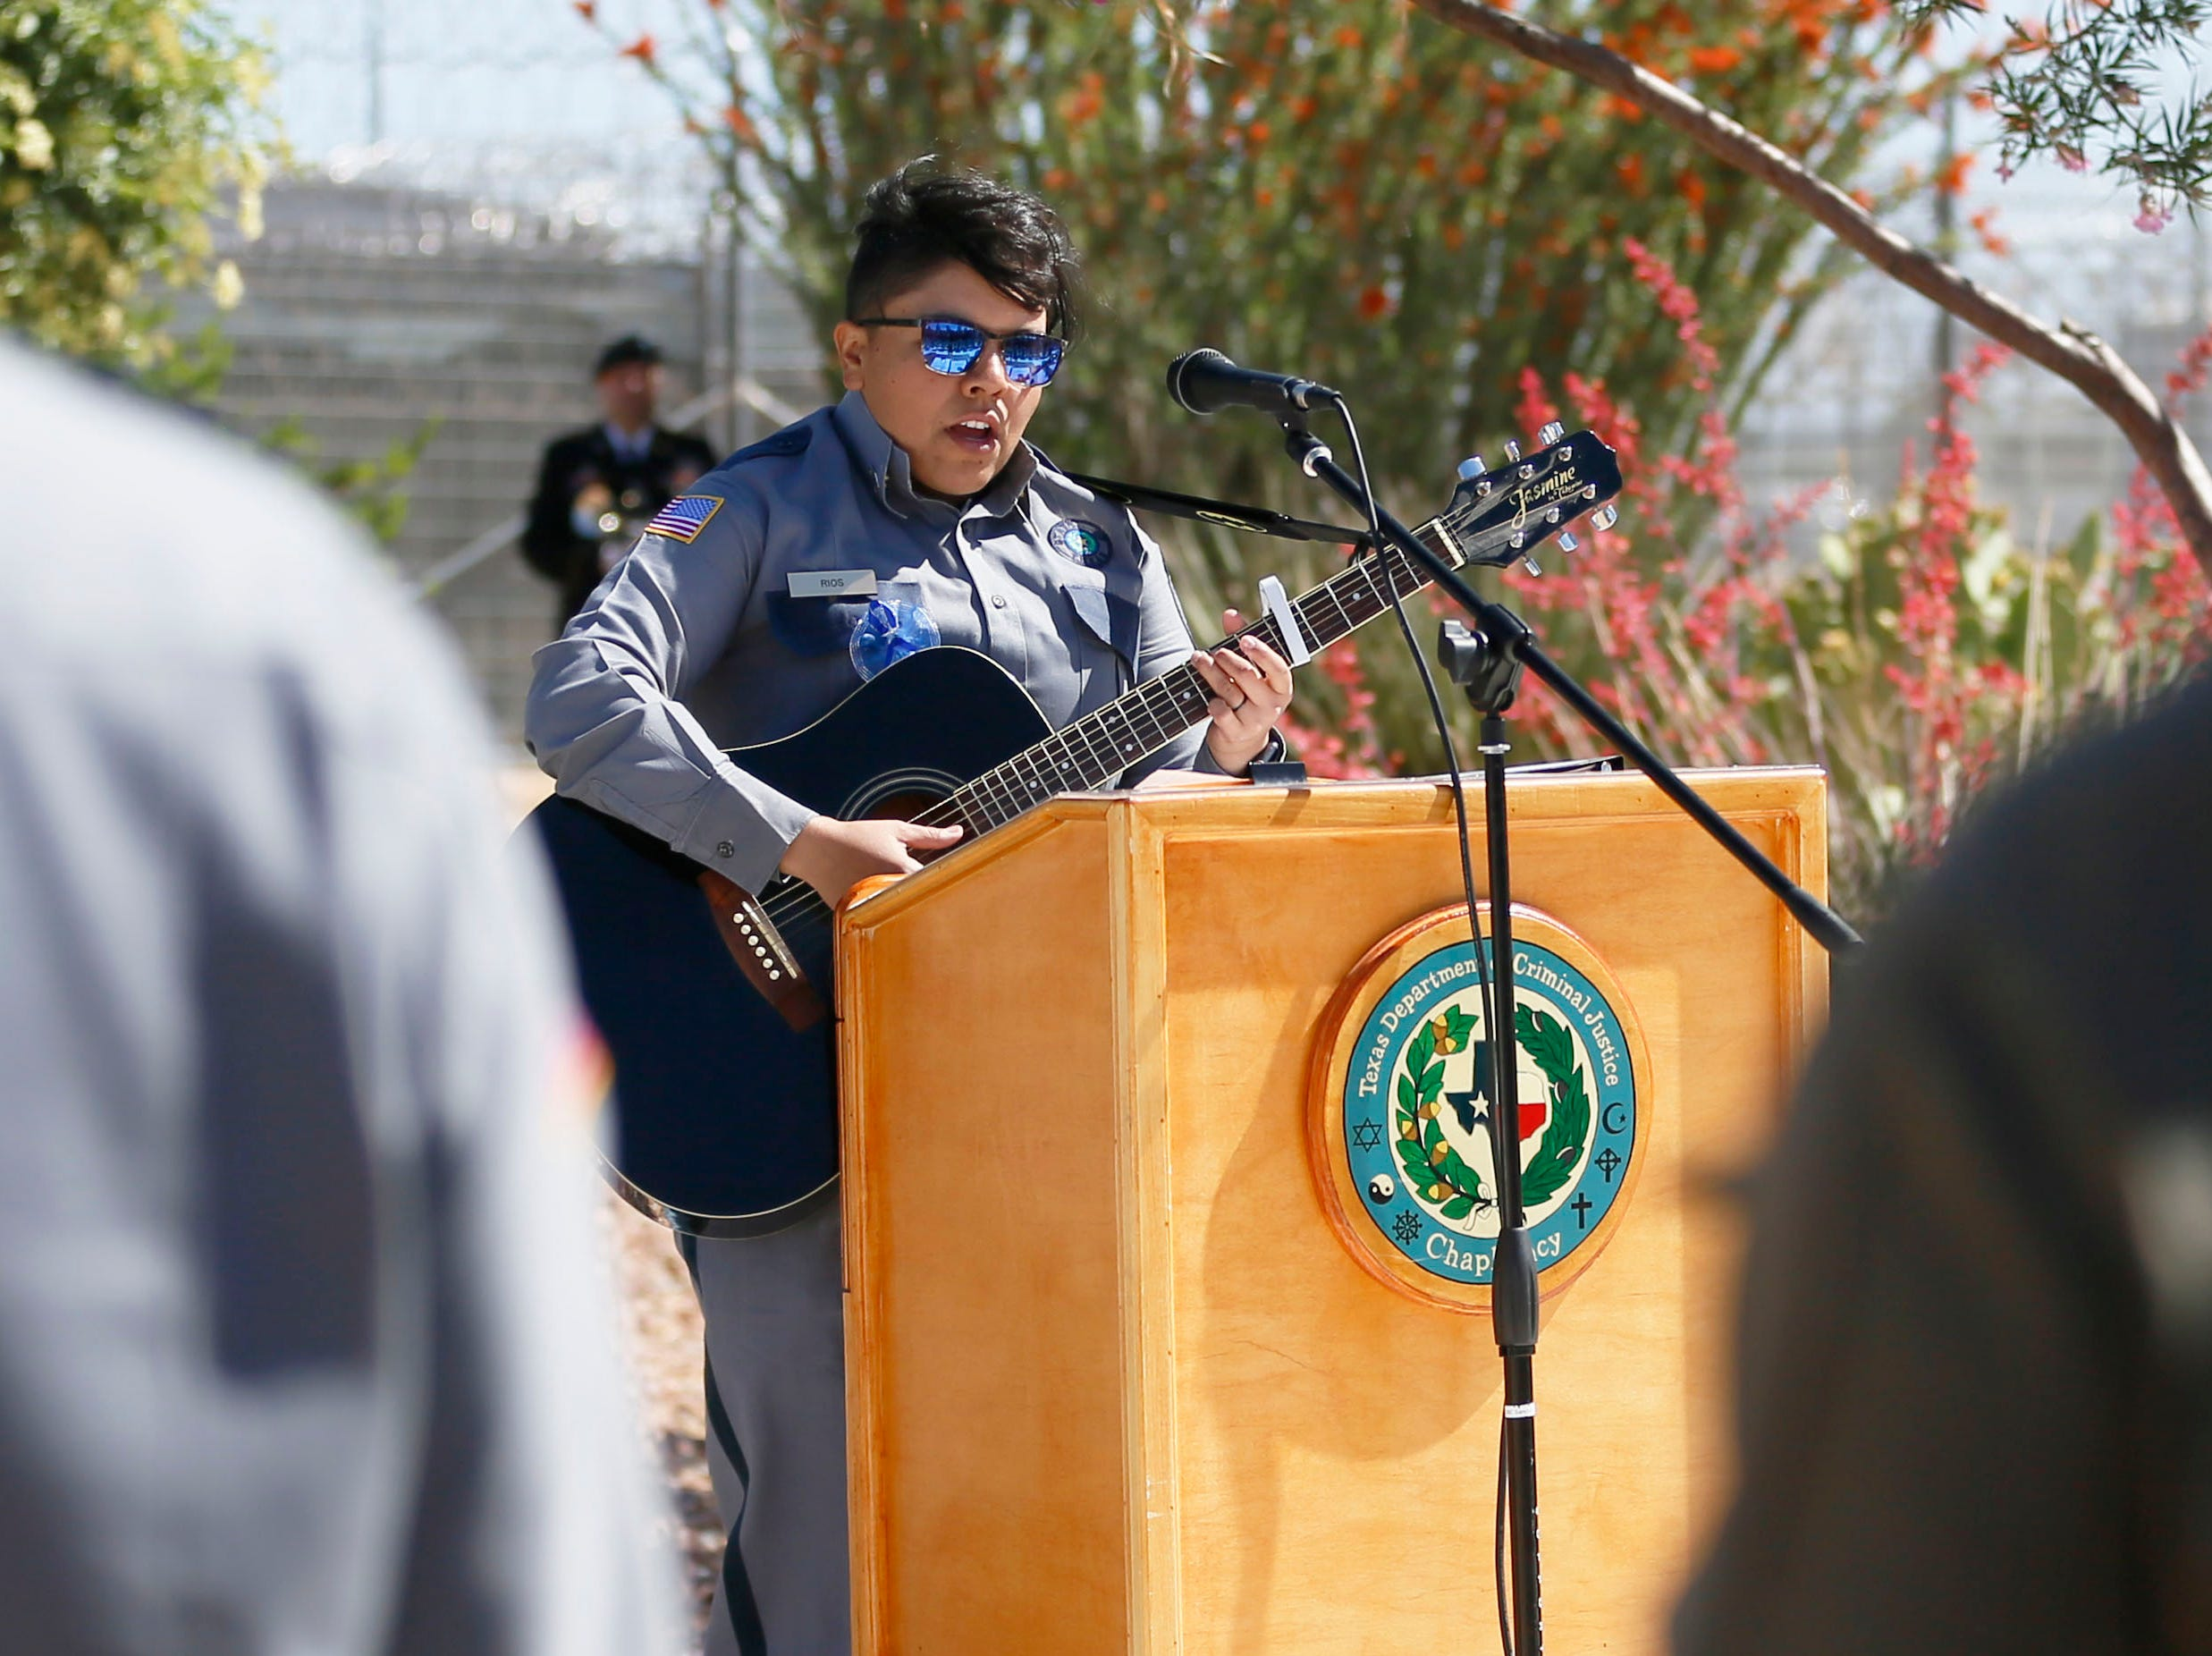 Sergeant of corrections Analucy Rios performs a song to honor the memory of fallen correctional officers Wednesday, May 8, at Rogelio Sanchez State Jail in El Paso.